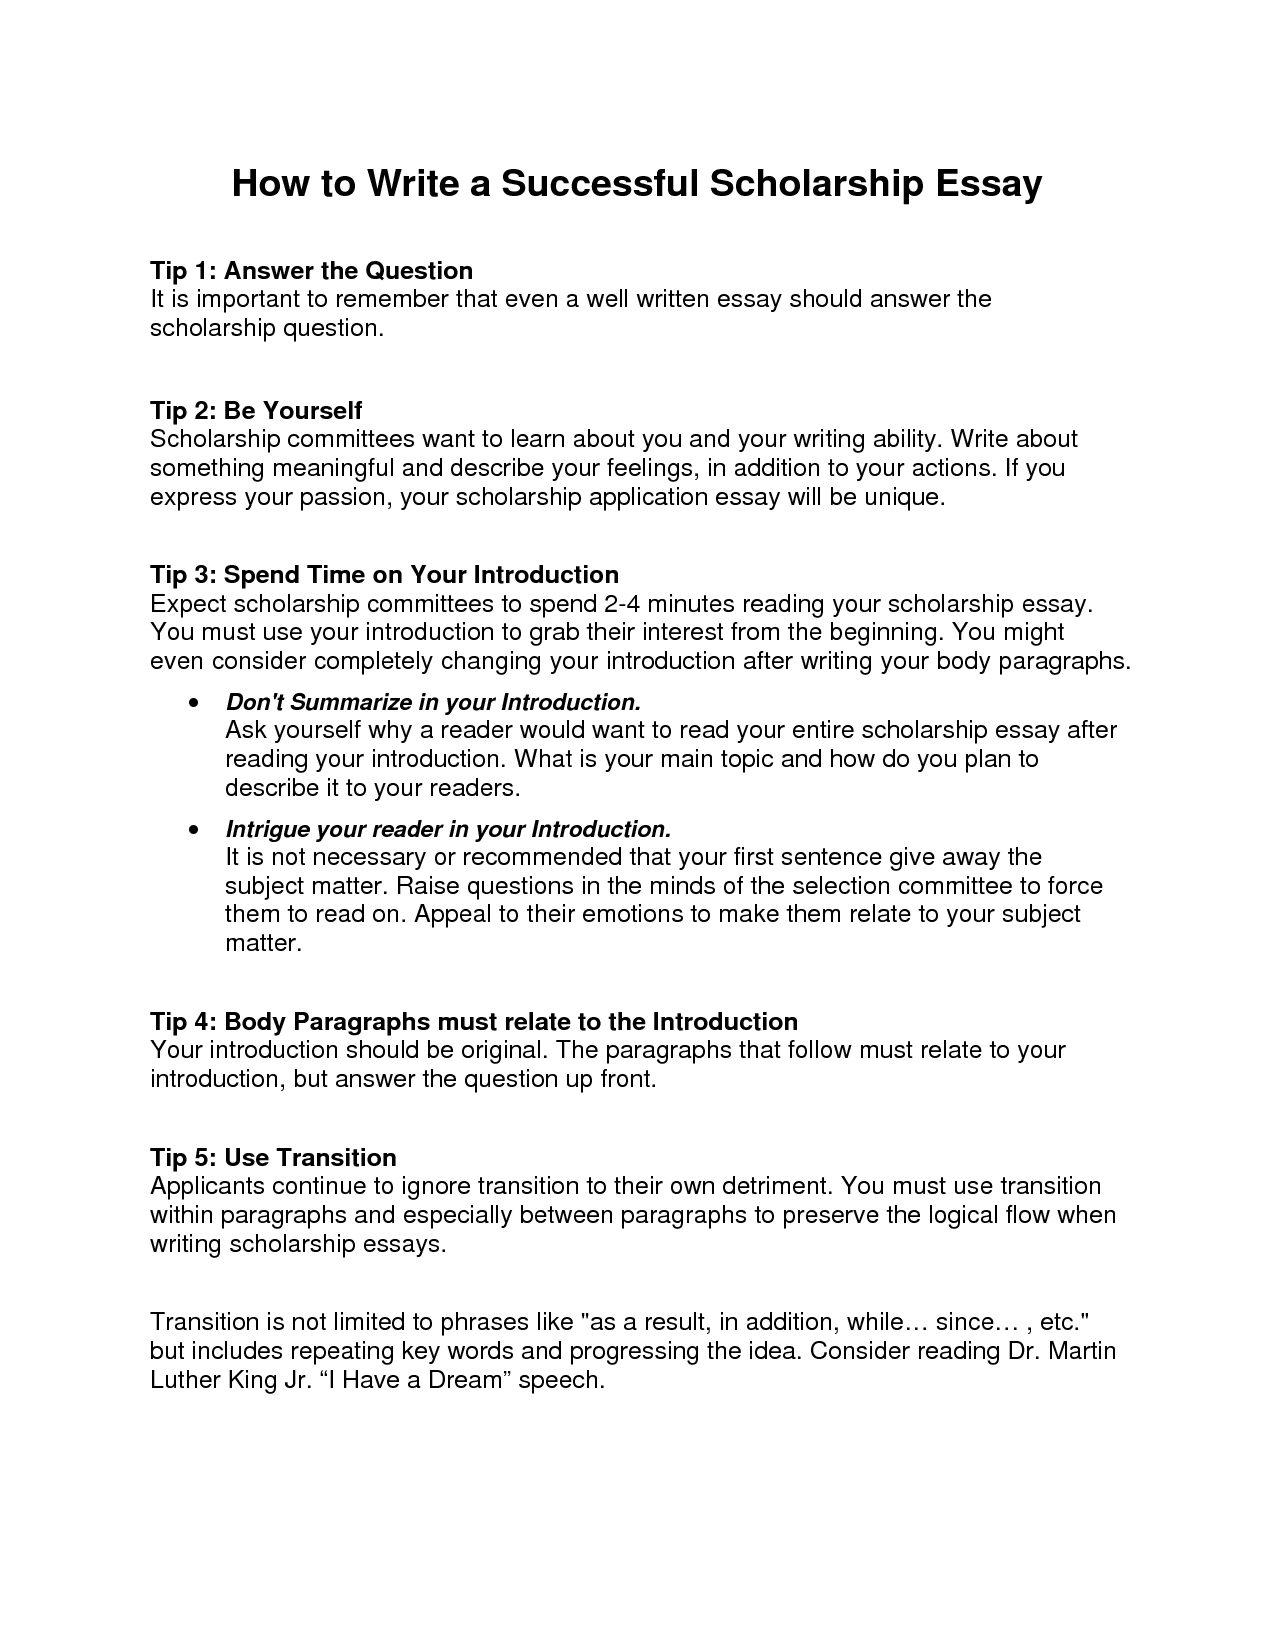 007 How To Write And Essay Example Unique An Outline 6th Grade Conclusion In Mla Format Full